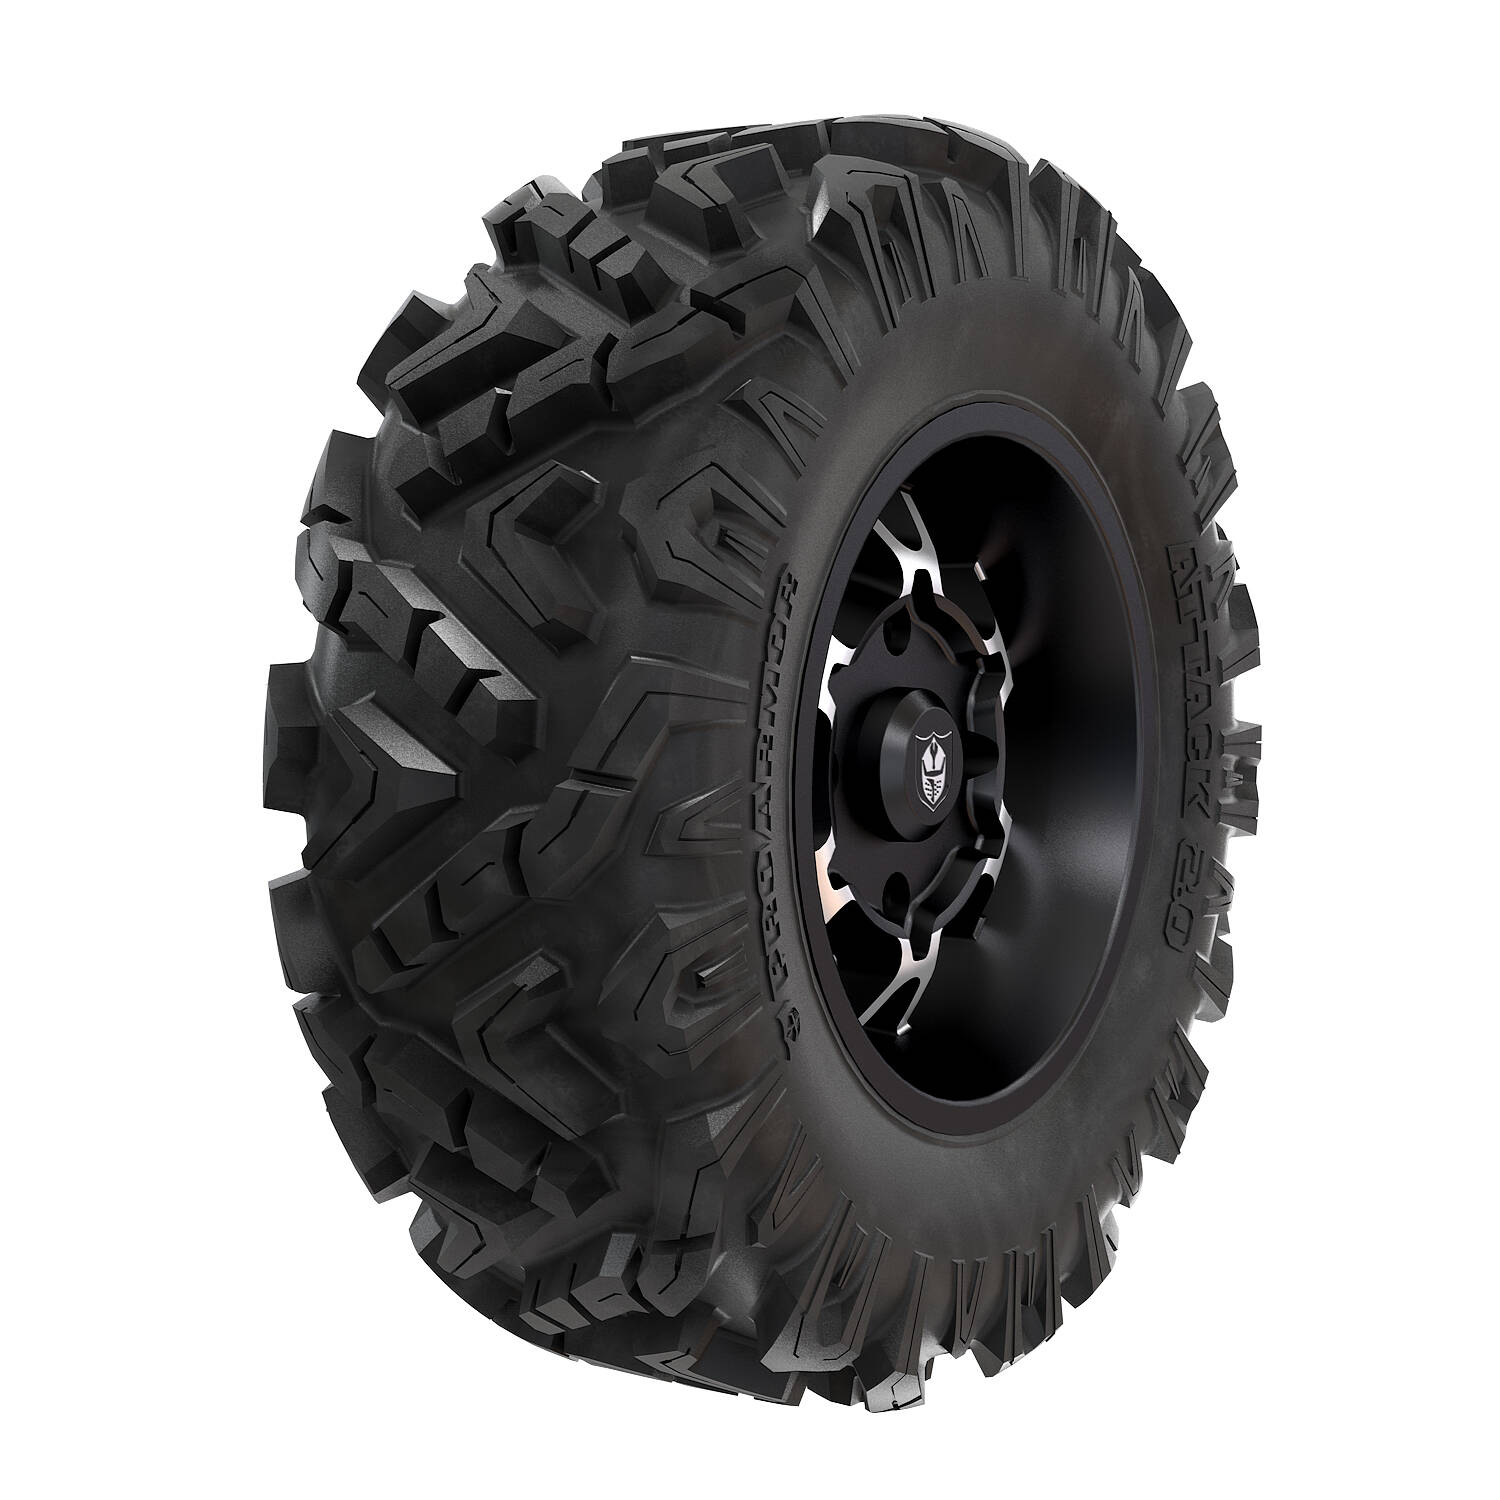 Pro Armor® Wheel & Tire Set: Cyclone - Accent & Attack 2.0 - 30""